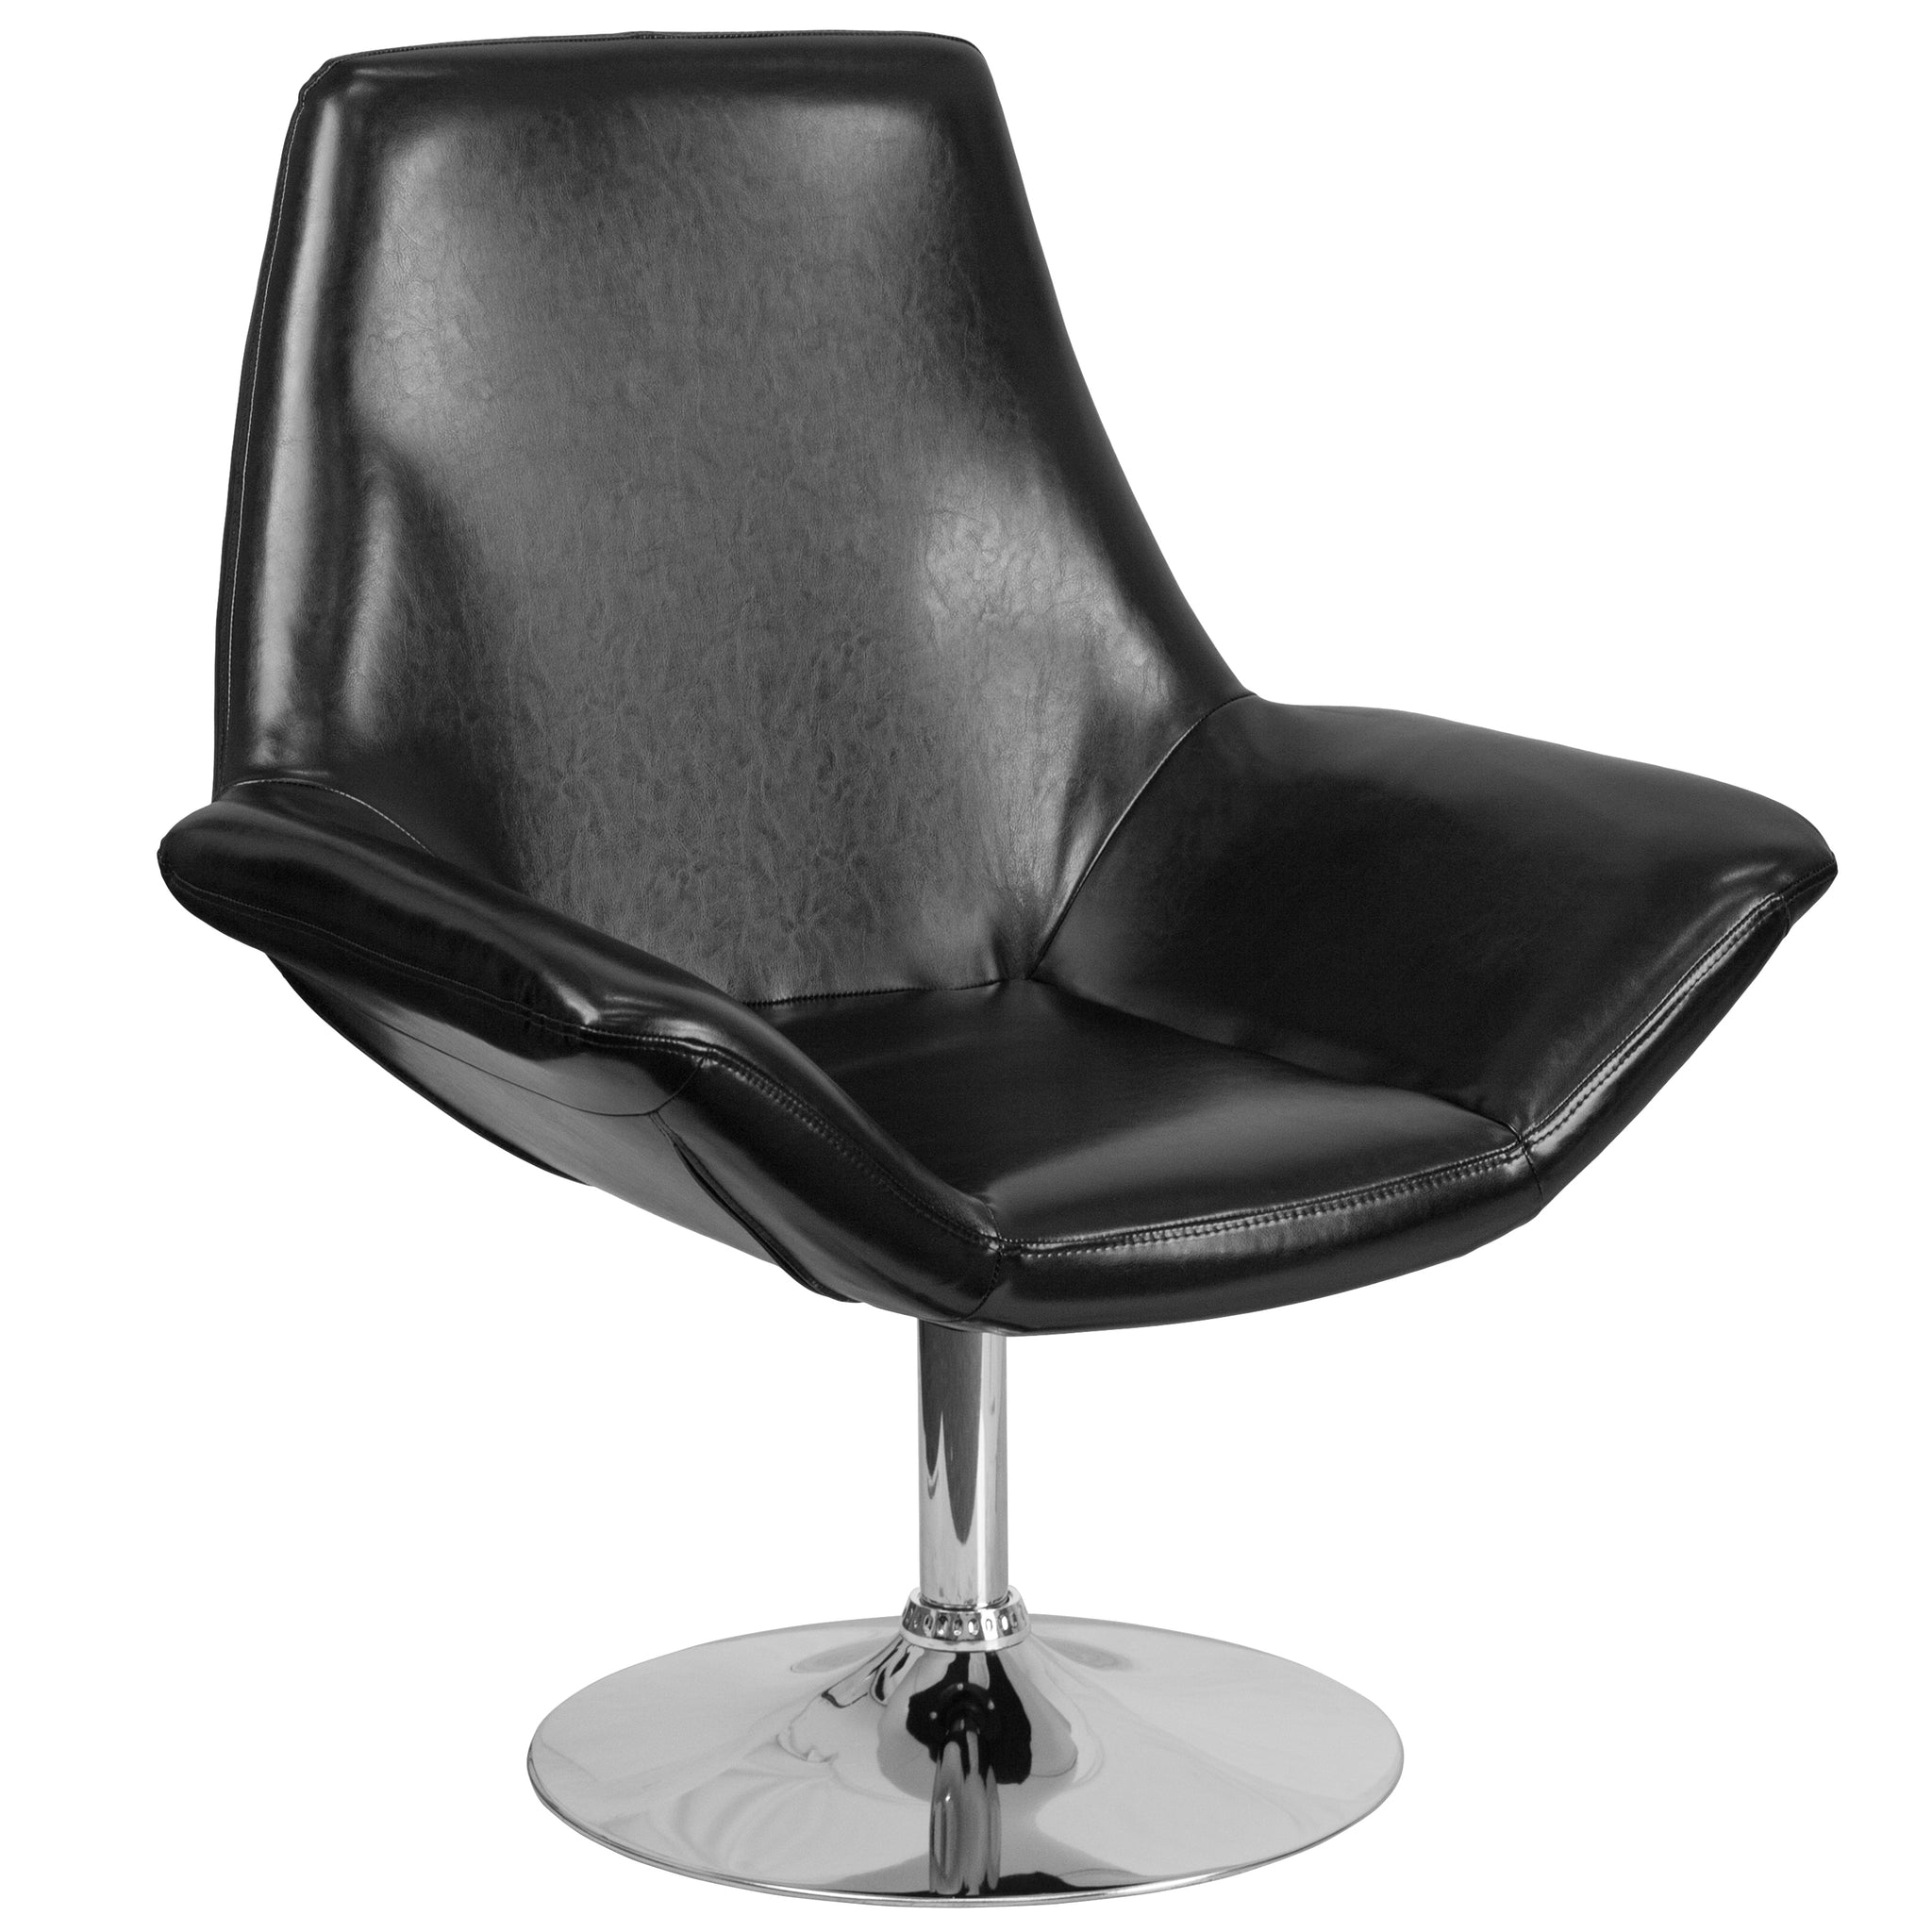 HERCULES Sabrina Series Leather Reception Chair: Black